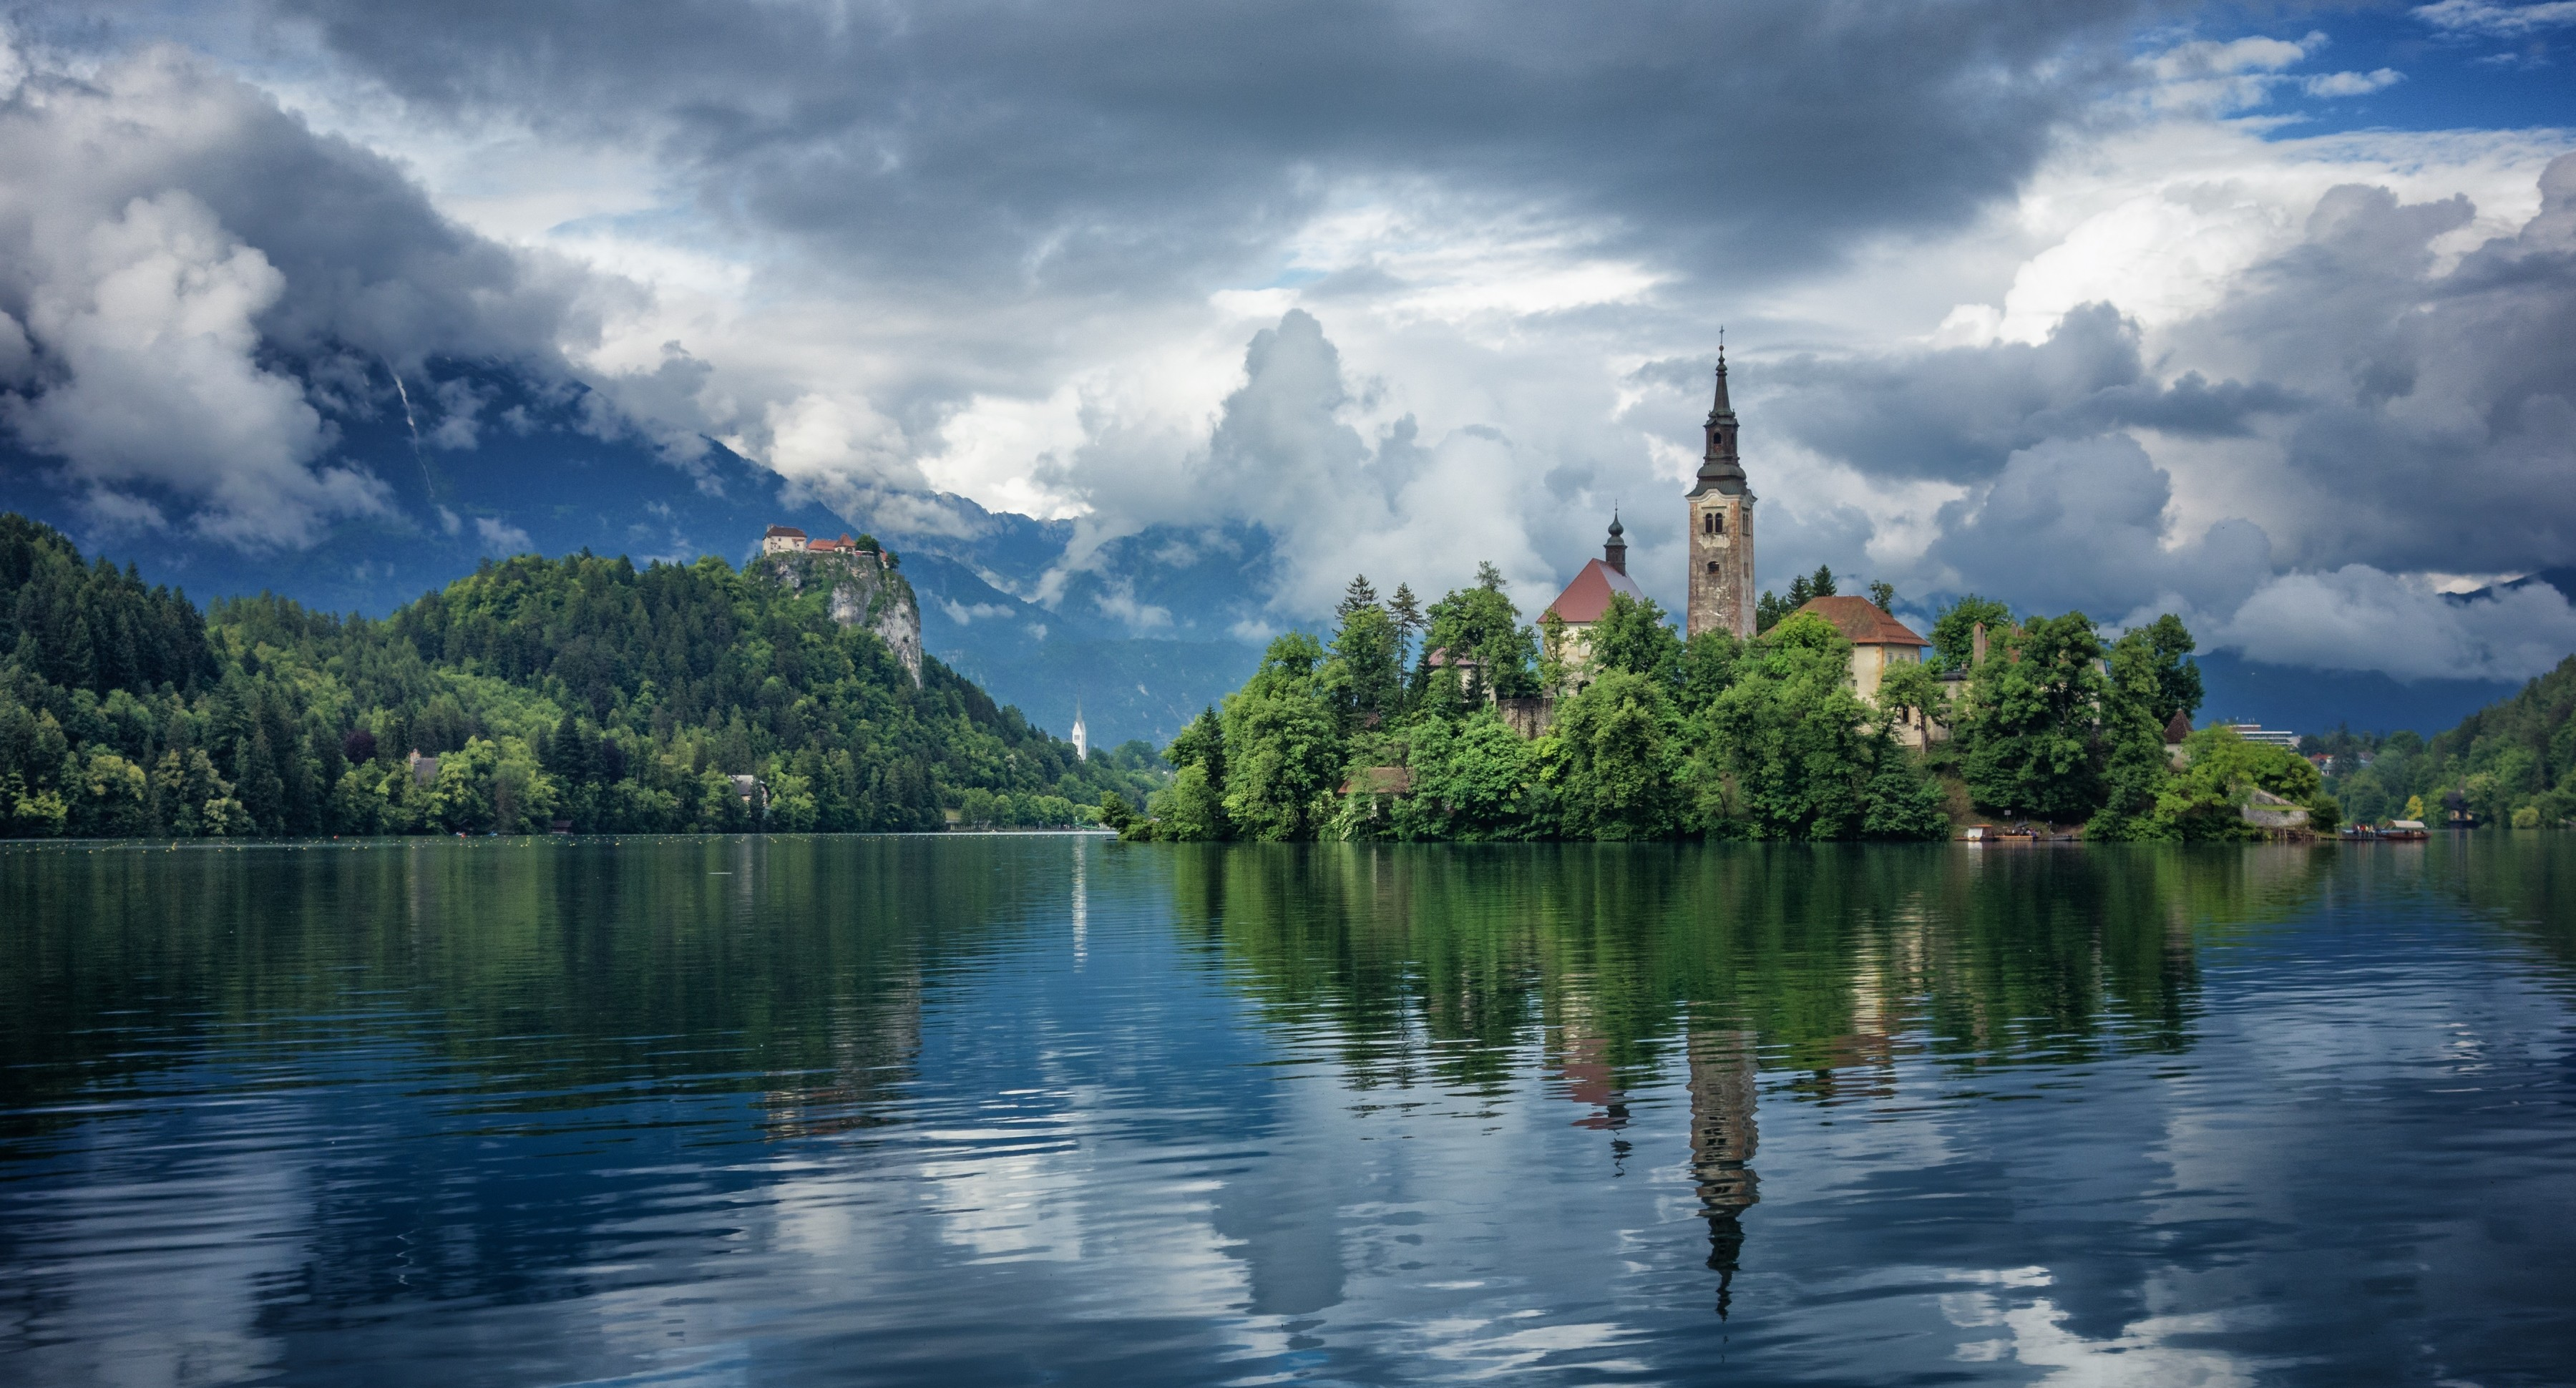 How To Download Wallpaper For Iphone 6 Bled Slovenia 電腦桌布 桌面背景 3600x1940 Id 540271